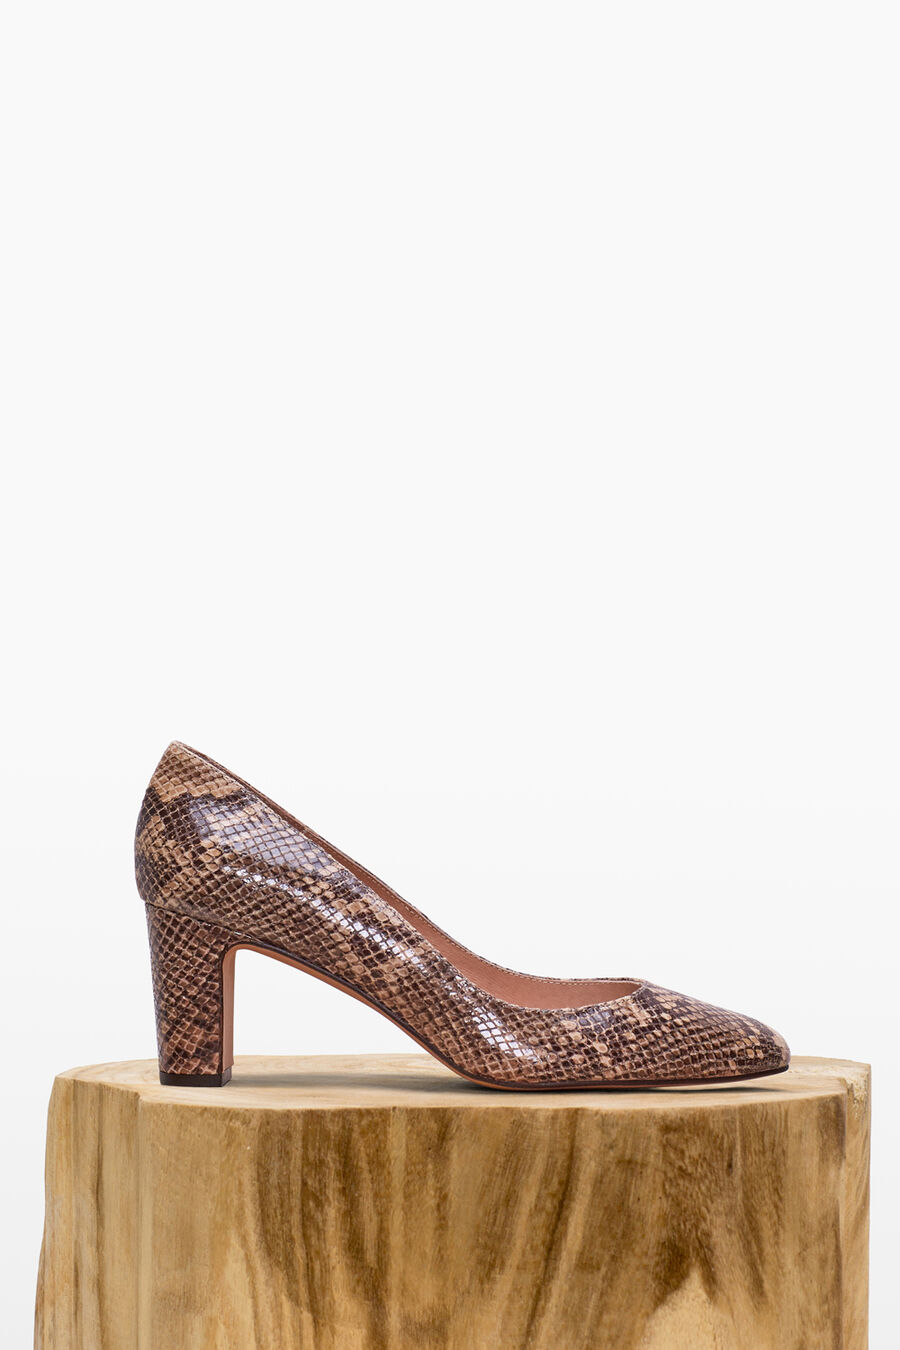 Leather snakeskin print shoes